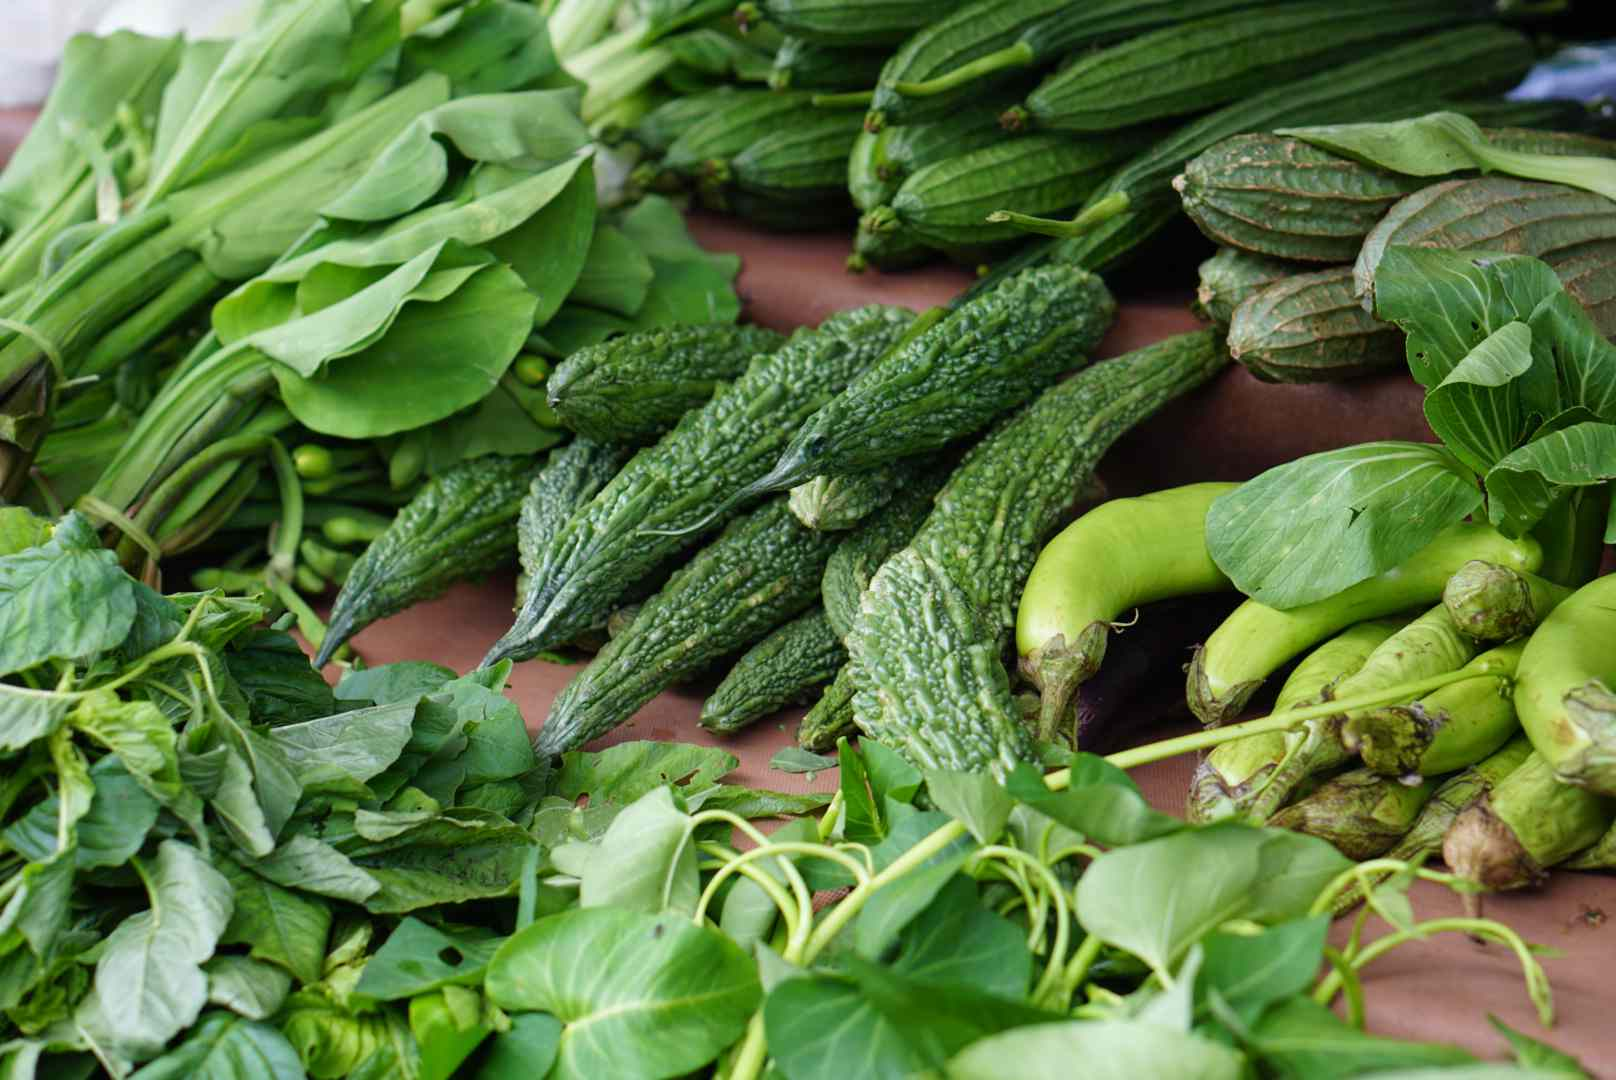 Varieties of green vegetables stacked on a tiered surface